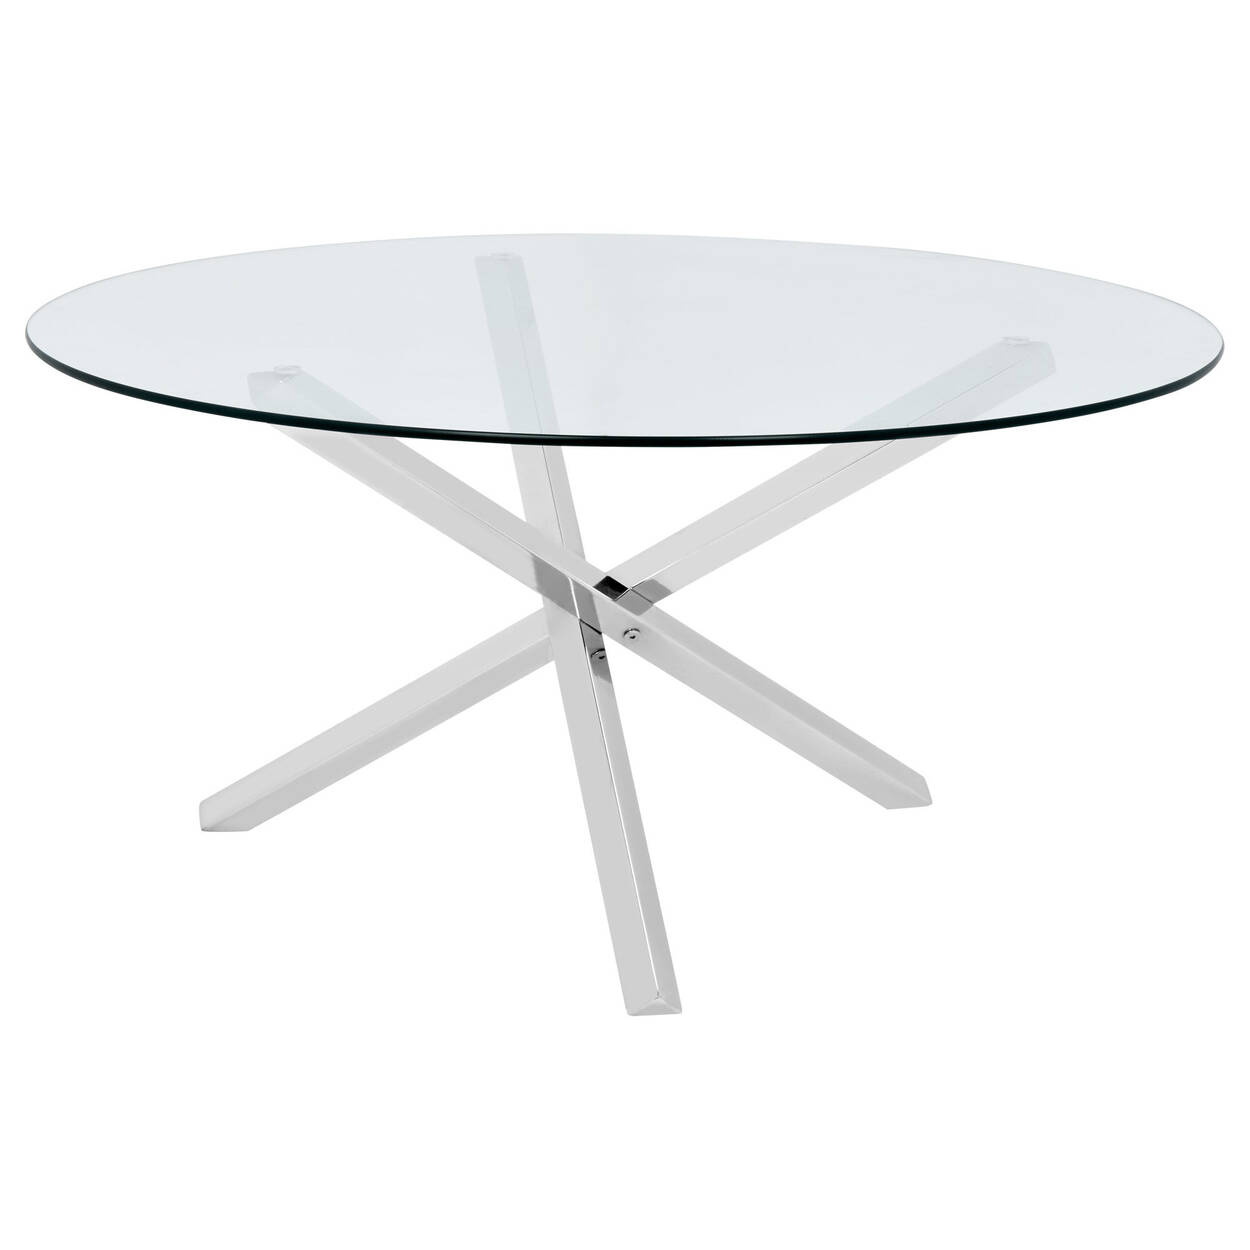 table tables slim com looks coffee thelightlaughed glass chrome elegance